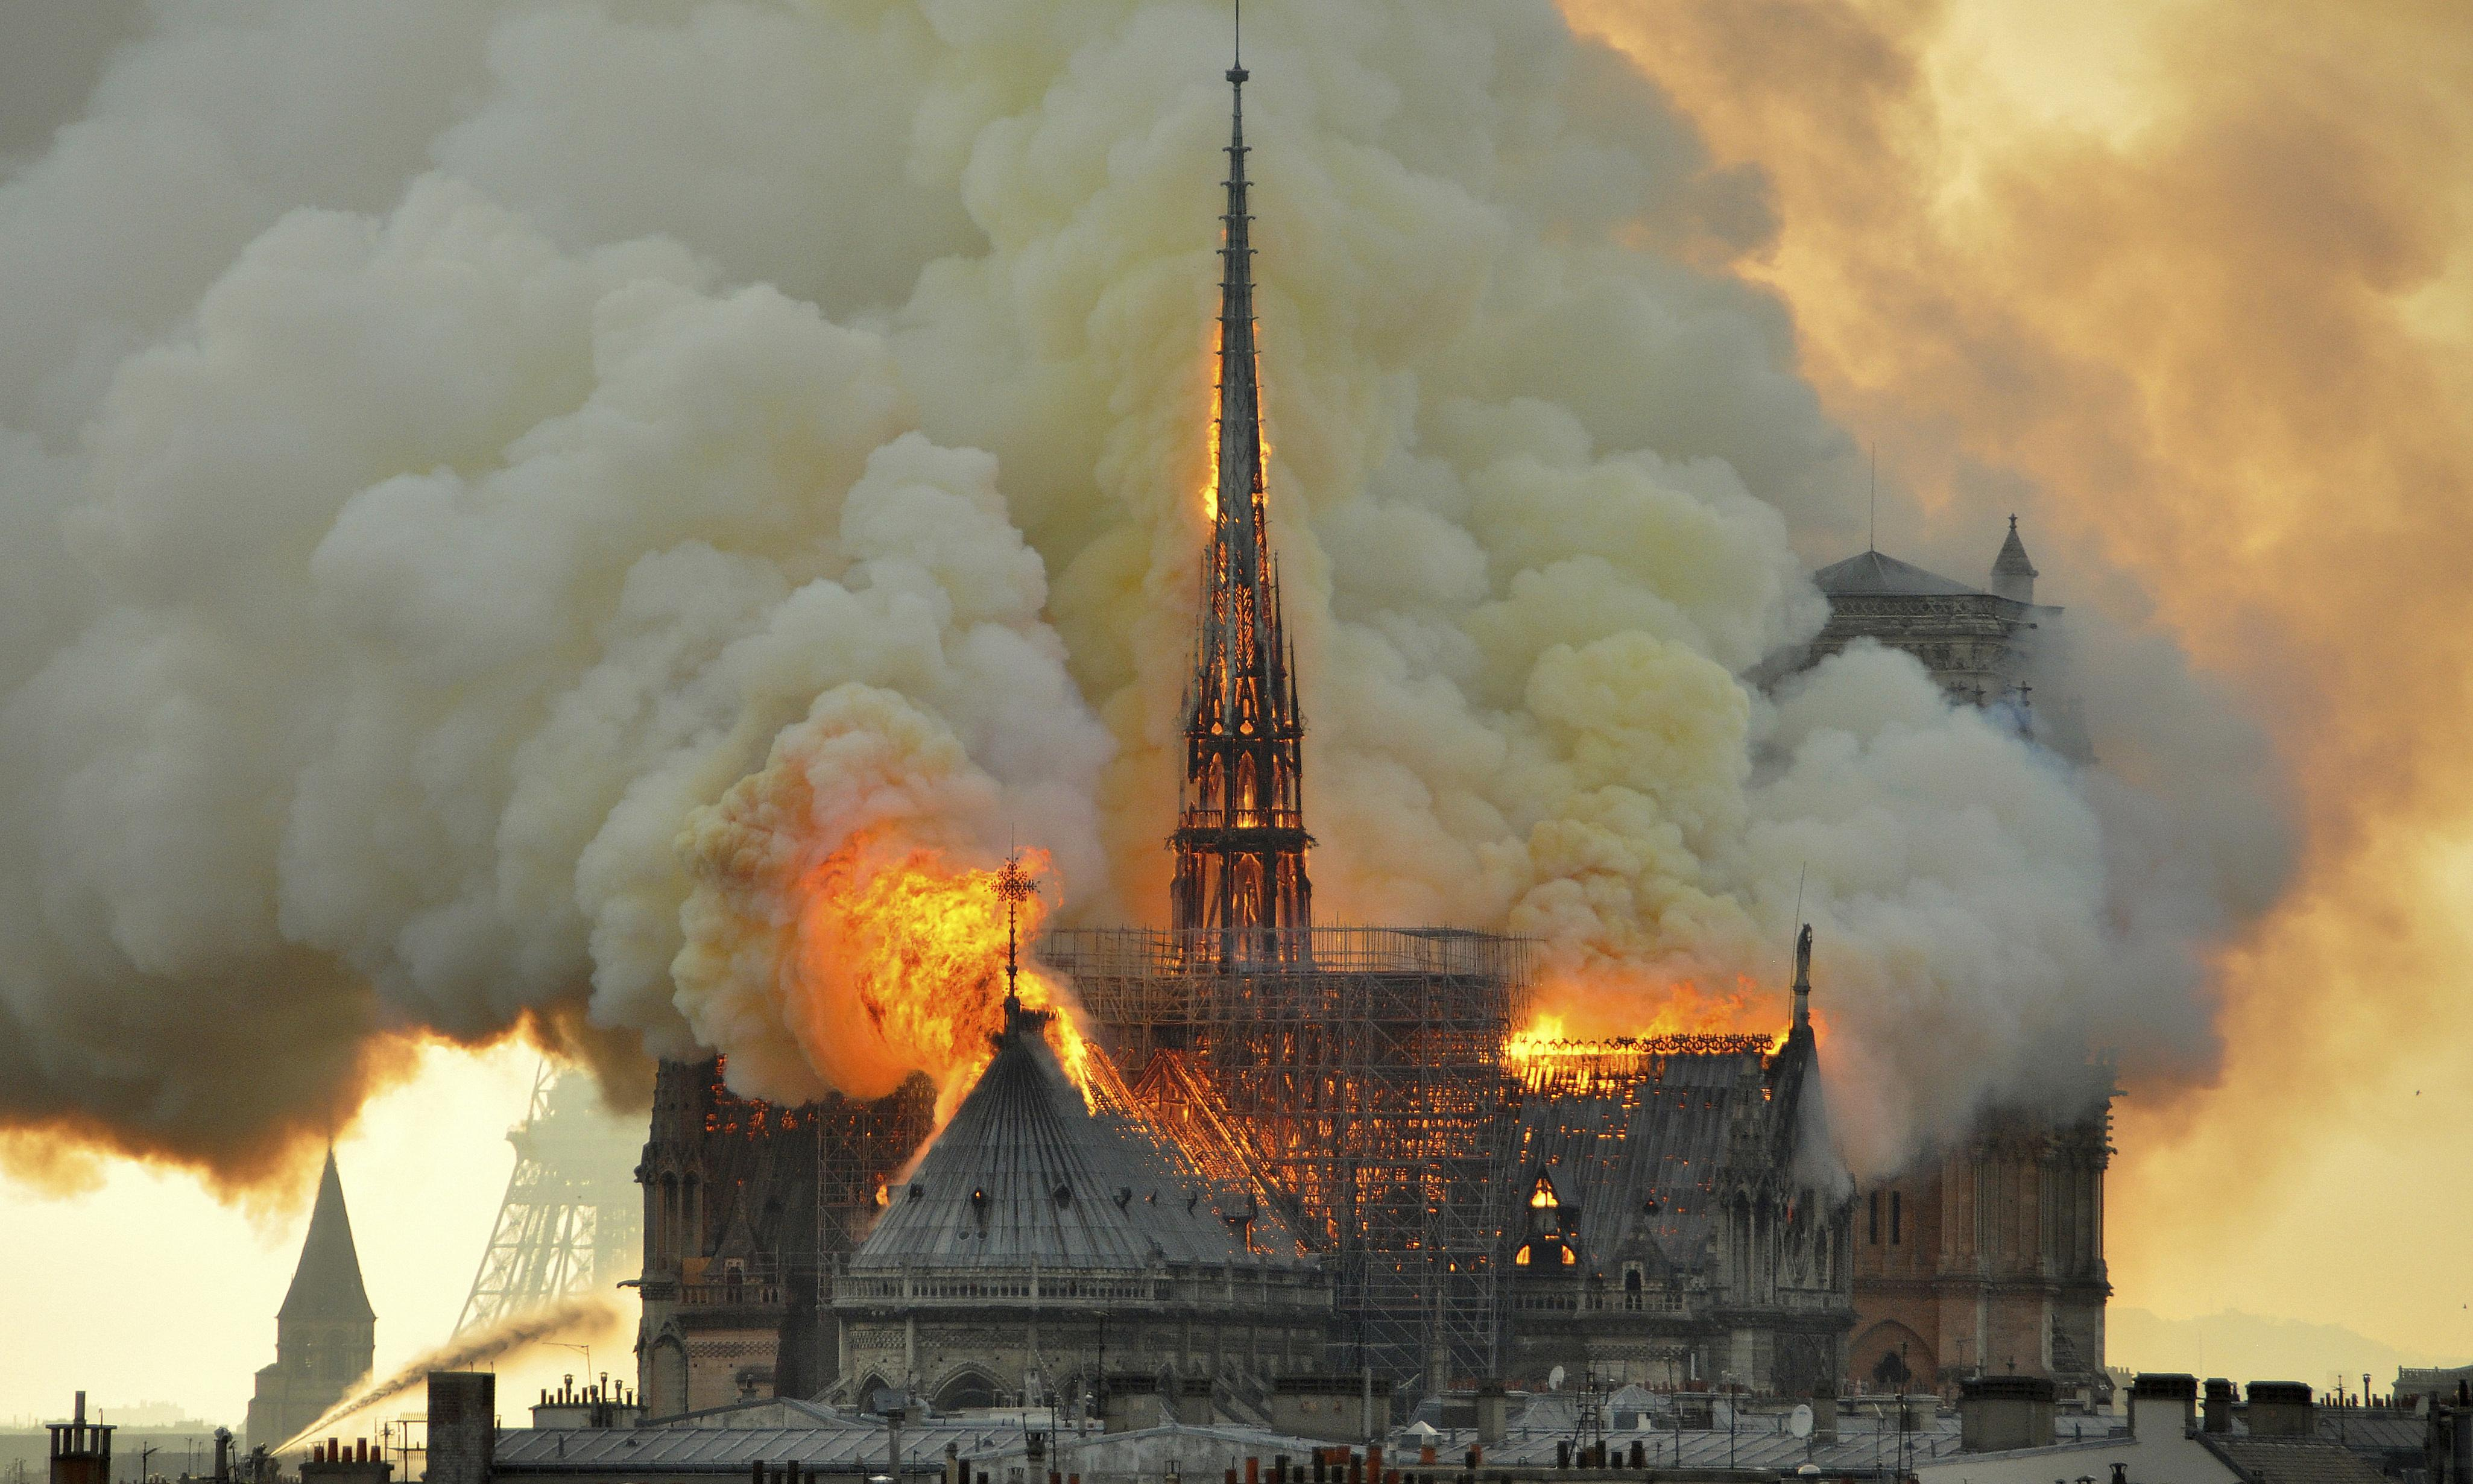 'Even more beautiful': should Notre Dame get a modern spire?